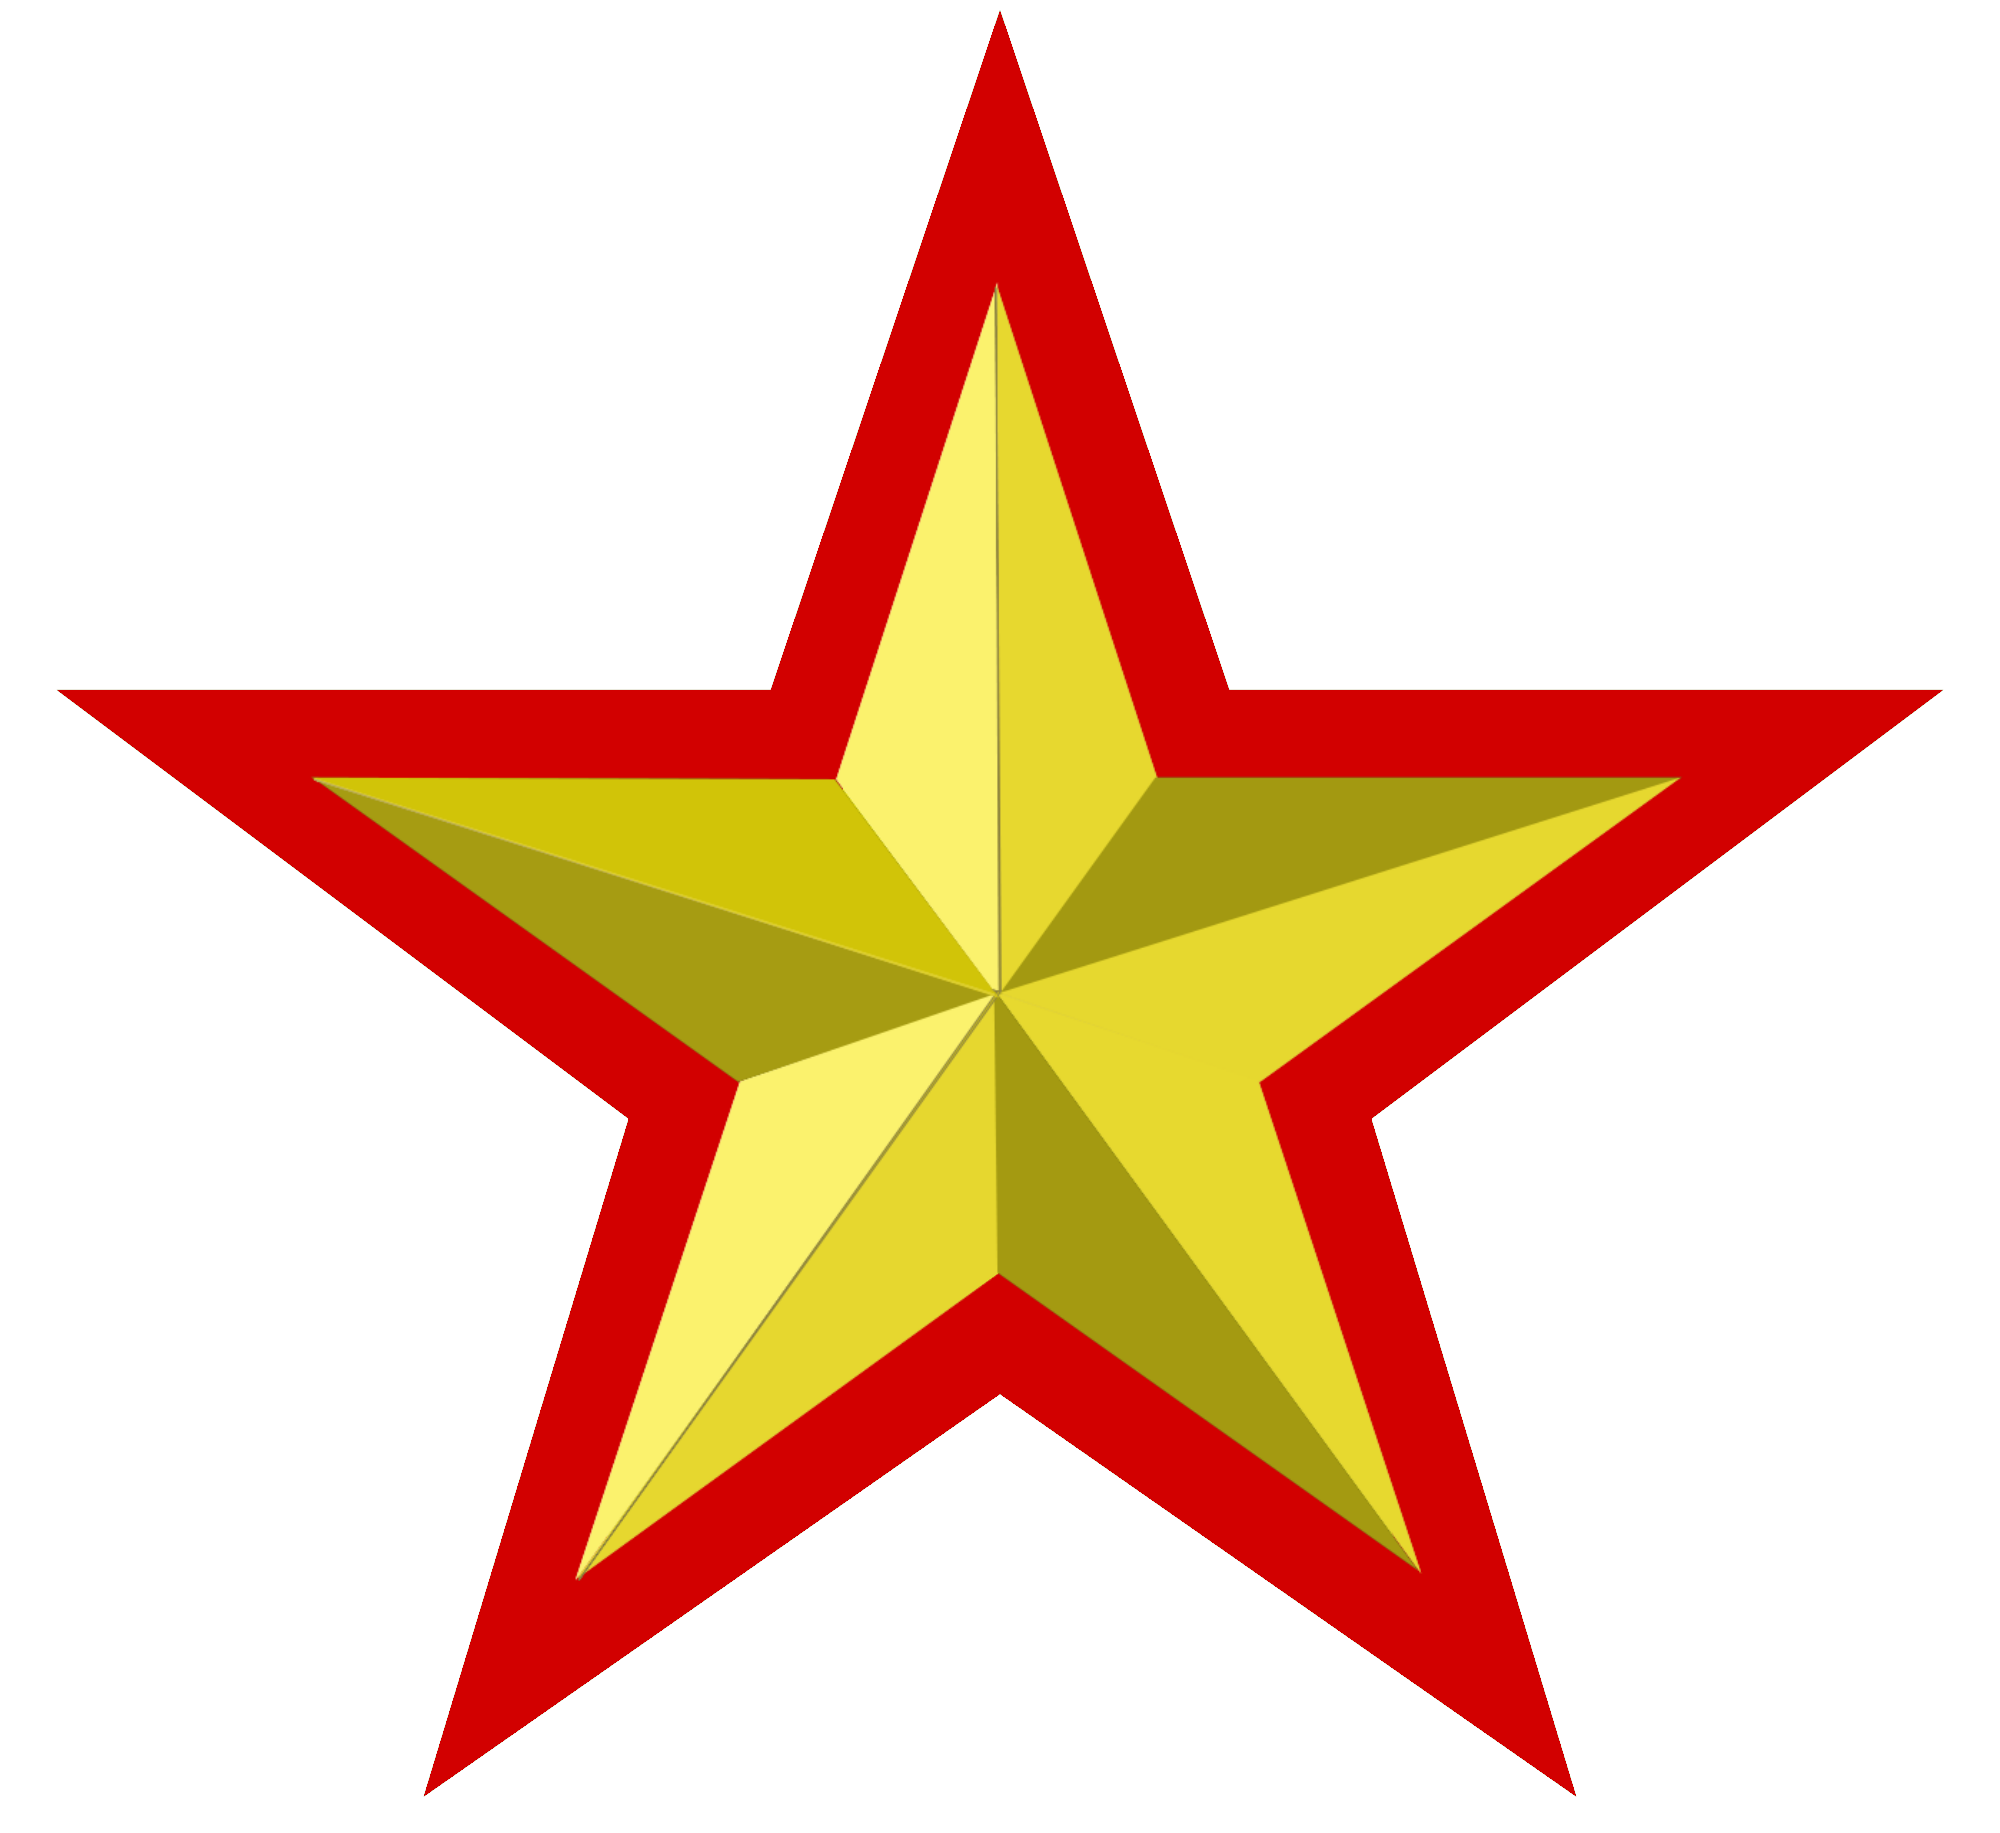 File:Golden star with red border.png.